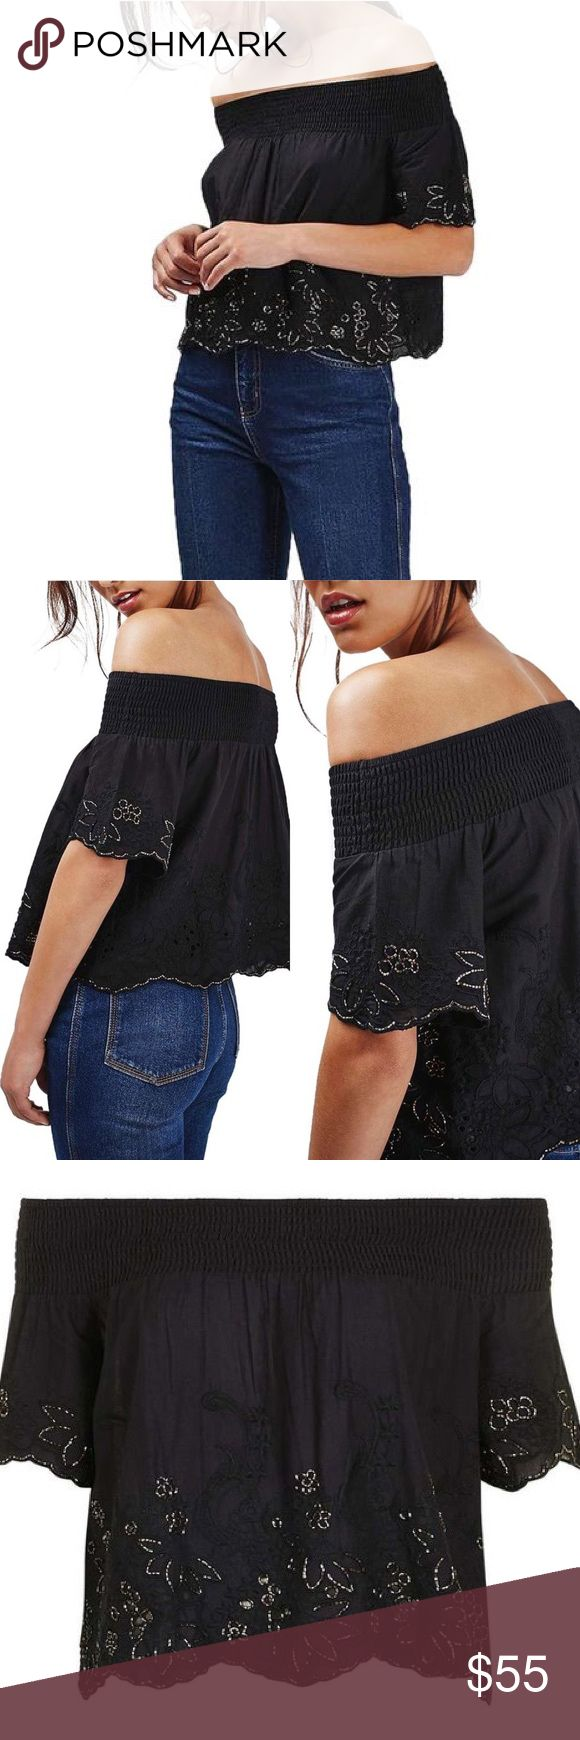 "TOPSHOP Floral Embellished Off the Shoulder Top Glistening silver beads trace the embroidered floral cutwork border of a smocked off-the-shoulder top that's perfect for hot days with its billowy silhouette and crisp cotton fabrication. * ~18"" center front length * Off-the-shoulder neck * Short sleeves * 100% cotton * Hand wash cold, dry flat Garment is labeled: EUR 42, US 10, UK 14. Fits like a US 10-12.  🚫NO TRADES🚫 Topshop Tops"